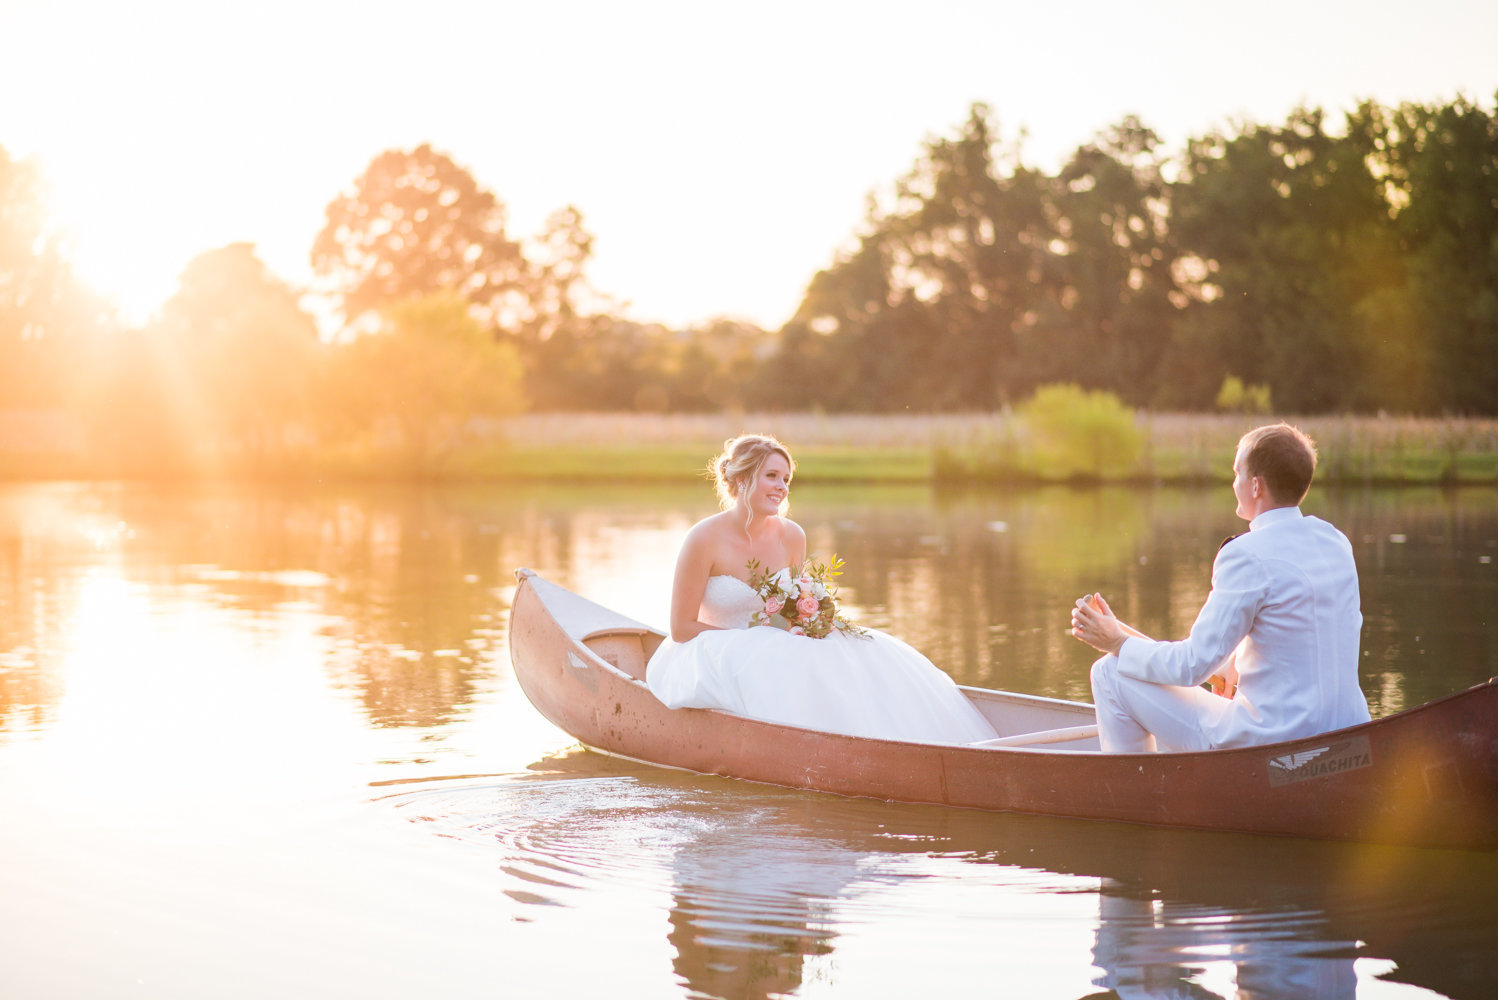 romantic image of couple in canoe during sunset at wedding